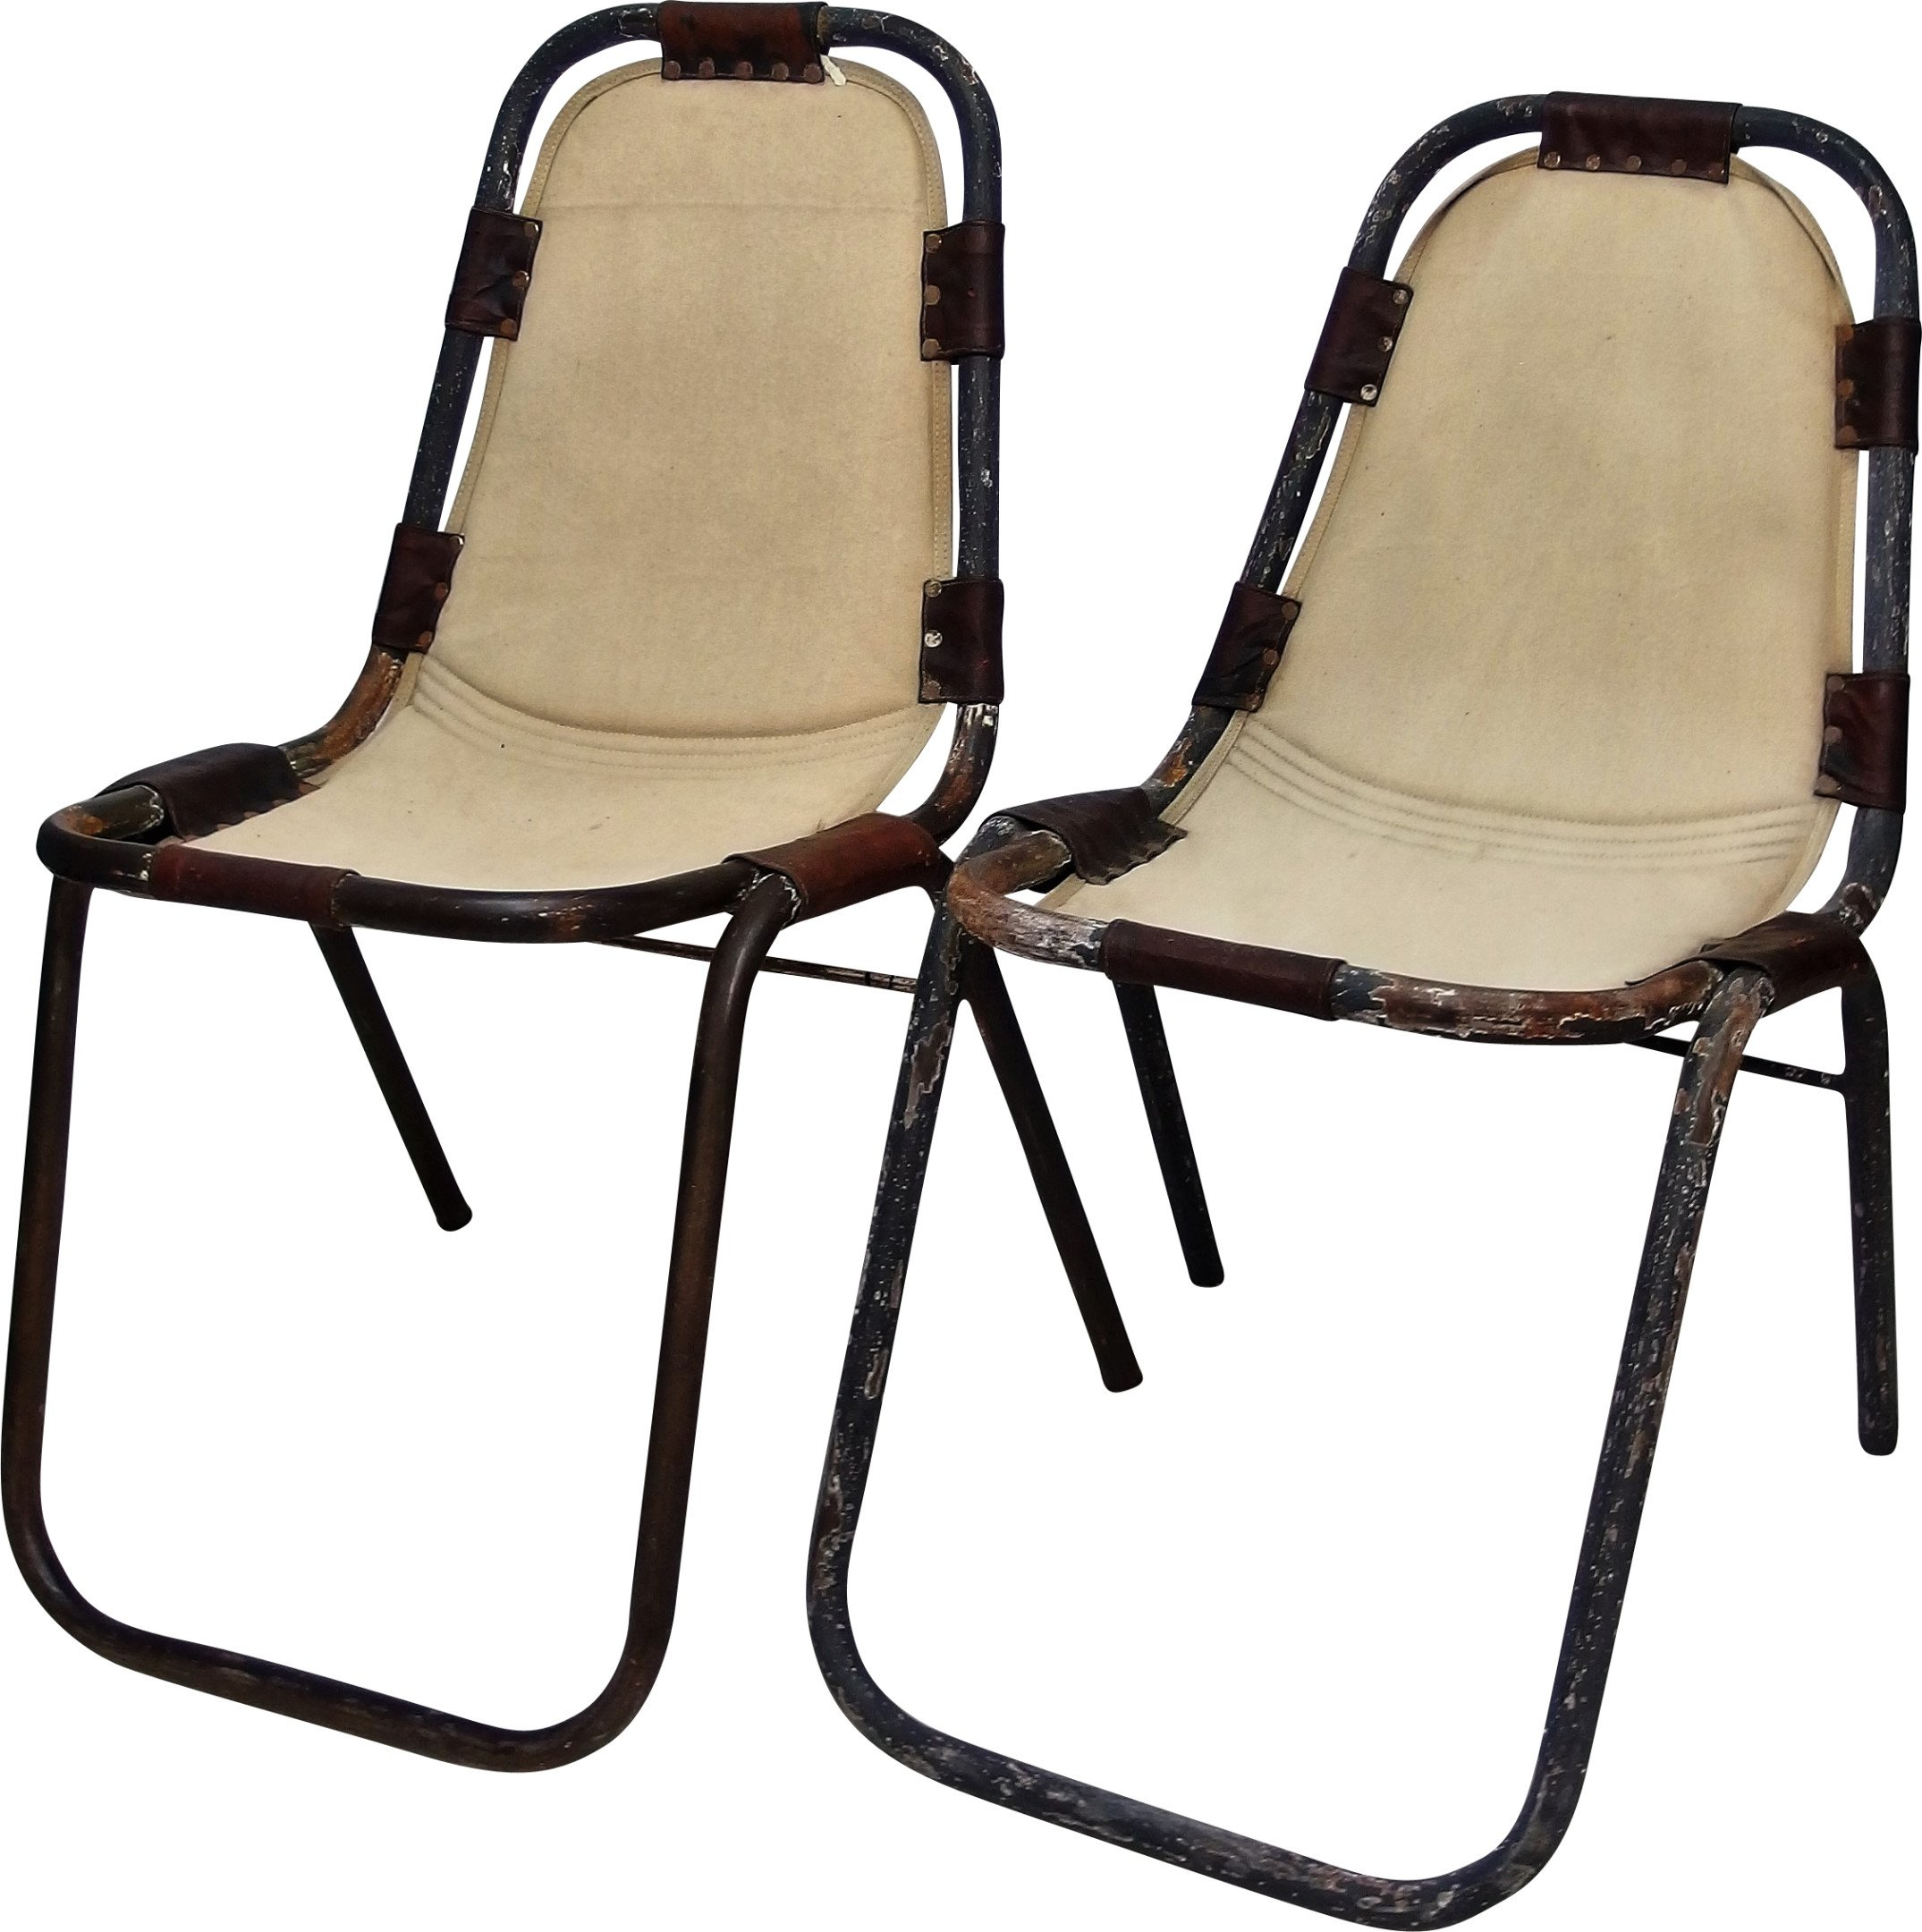 Pair of Chairs by Ch. Perriand, France, 1960s